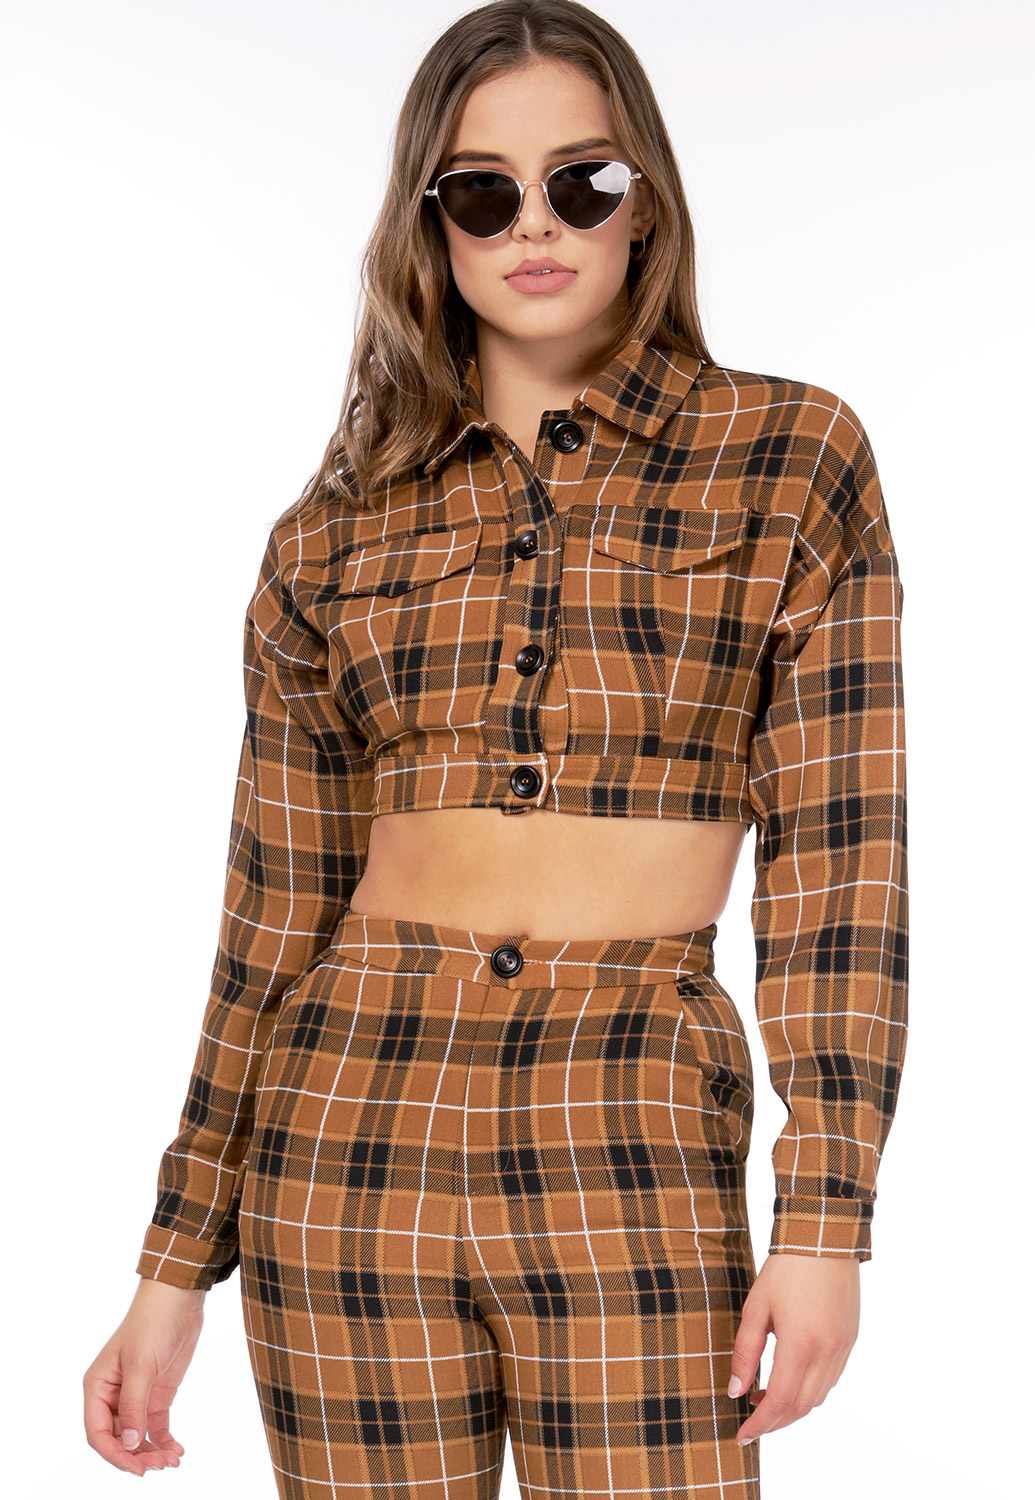 Plaid Button Up Dressy Top